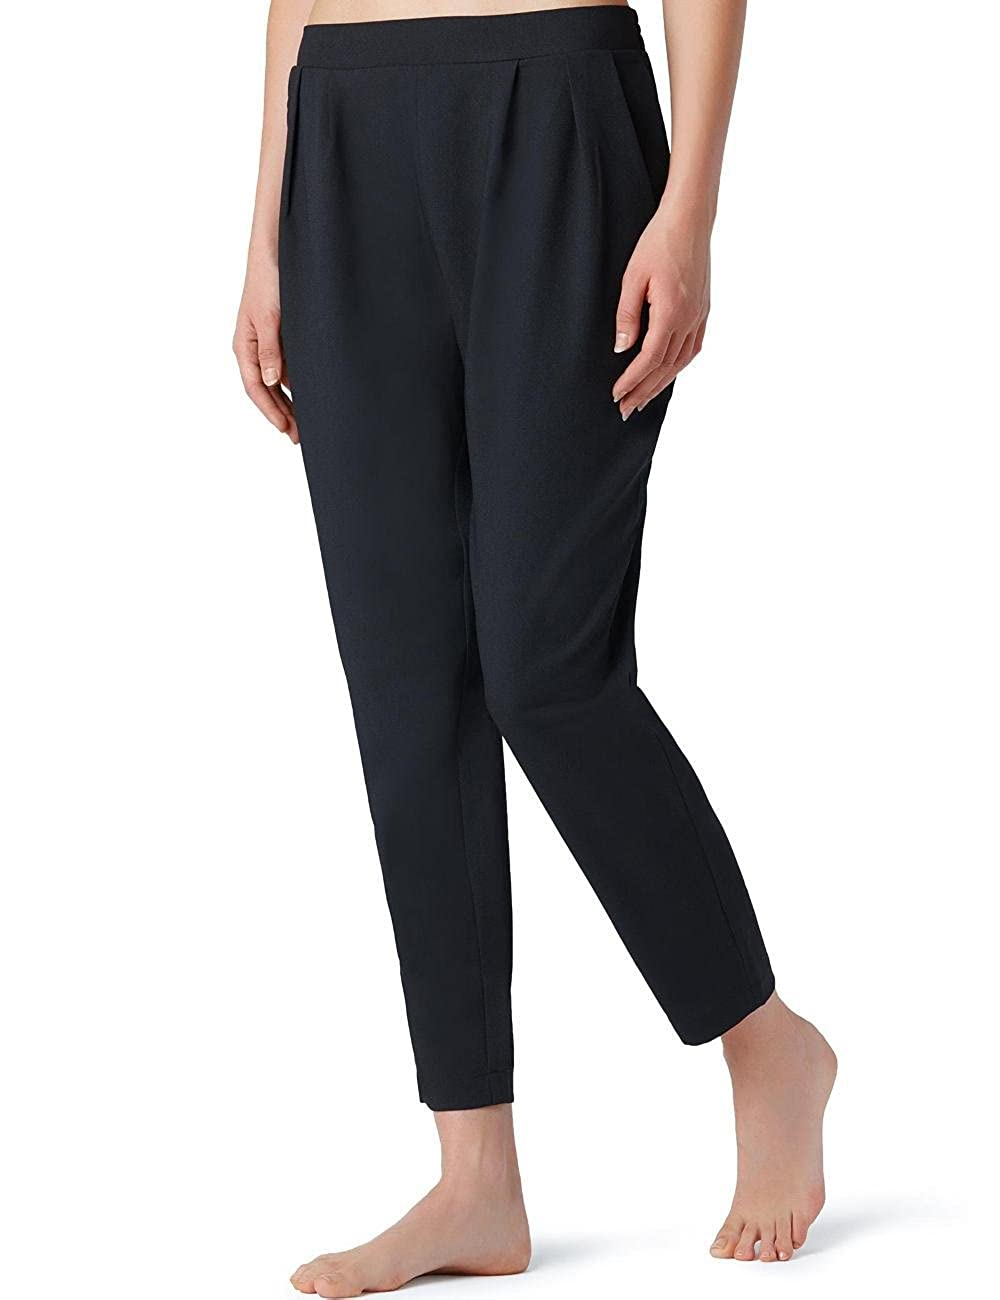 Calzedonia Femme Leggings poches